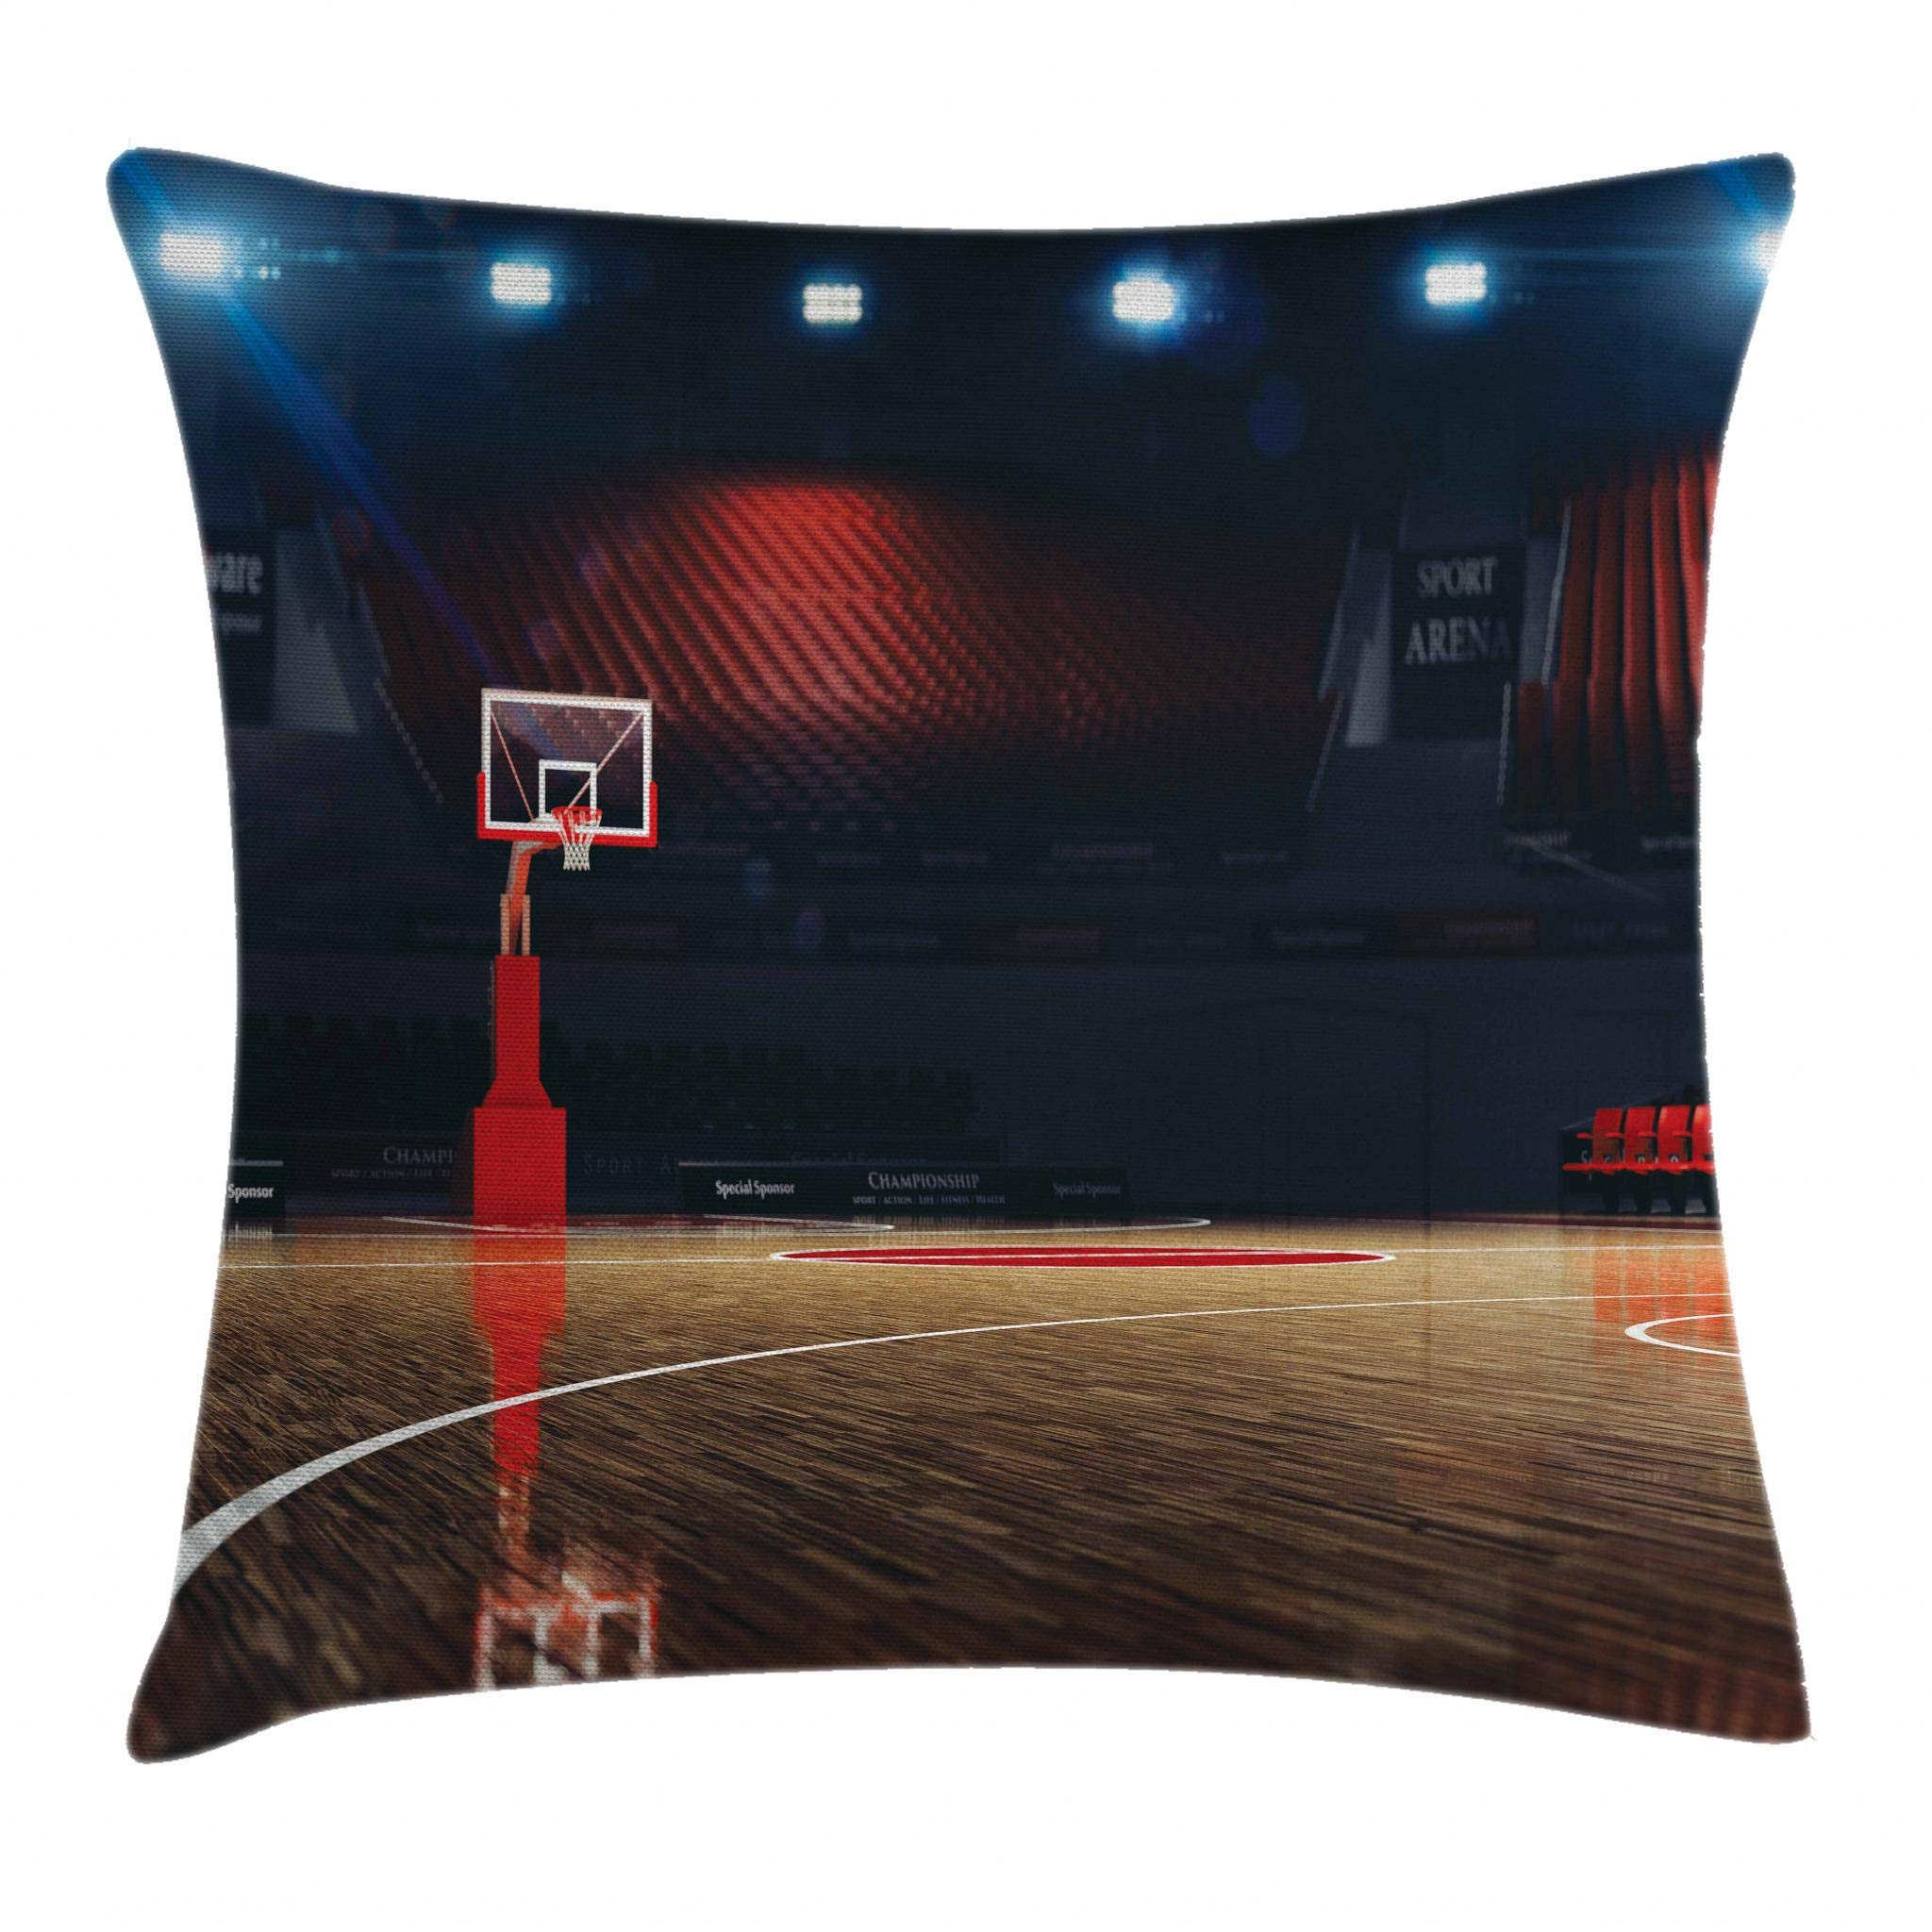 Ambesonne Basketball Throw Pillow Cushion Cover, Picture of Empty Basketball Court Sport Arena with Wood Floor Print, Decorative Square Accent Pillow Case, 28 X 28 Inches, Brown Black and Red by Ambesonne (Image #1)